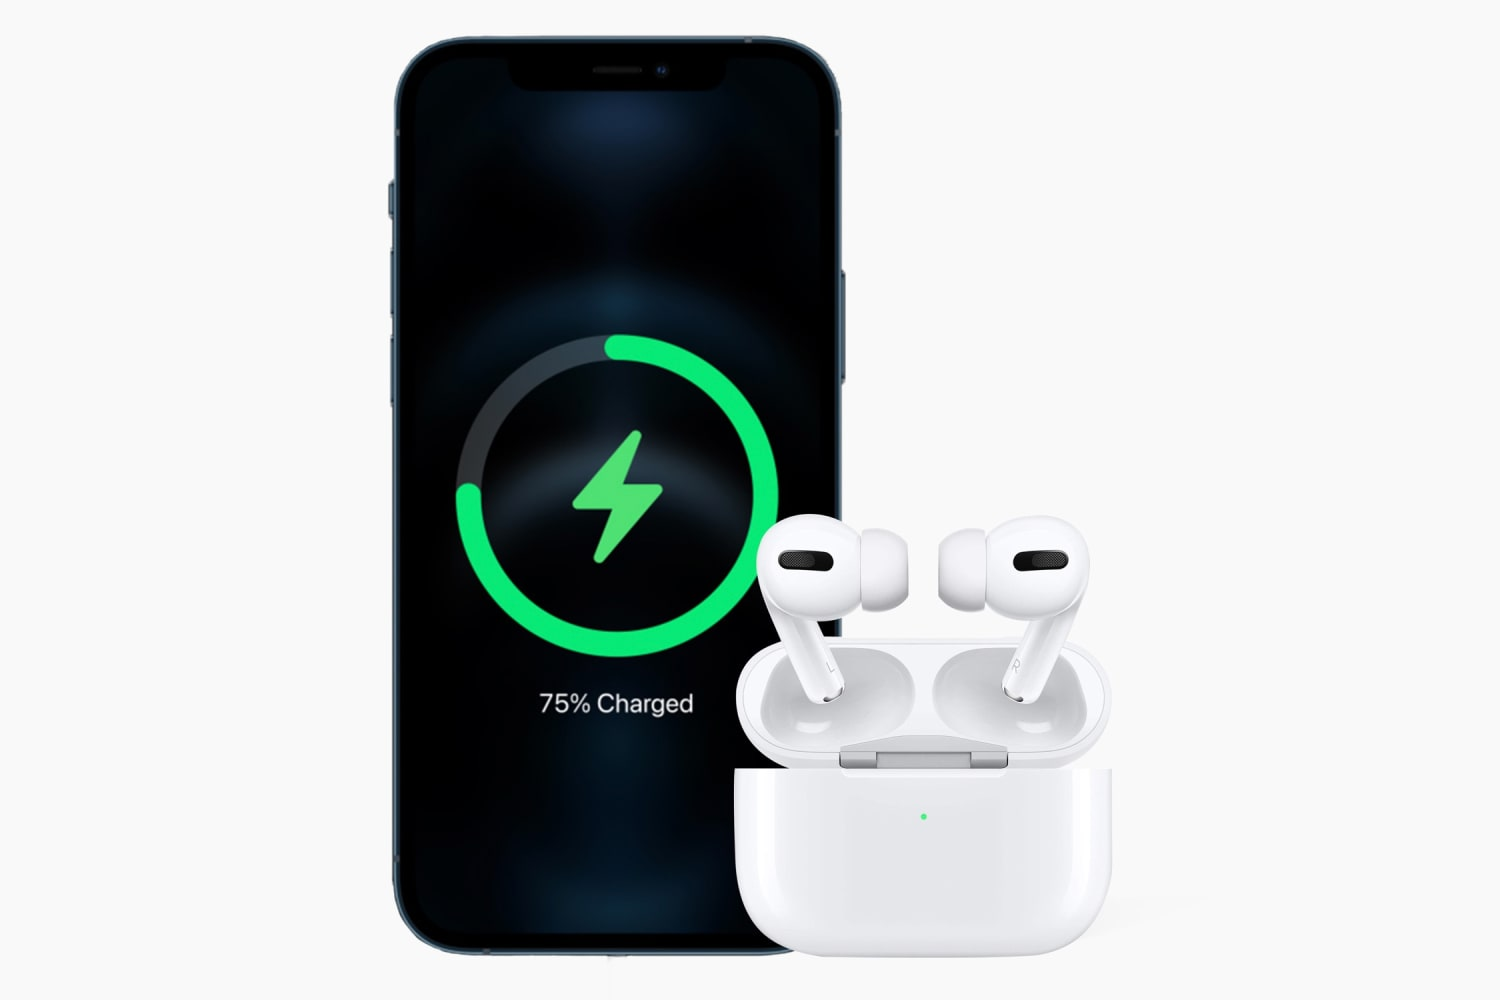 ffc-filing-hints-at-apple-iphone-12-s-hidden-reverse-charging-feature-20201028-1